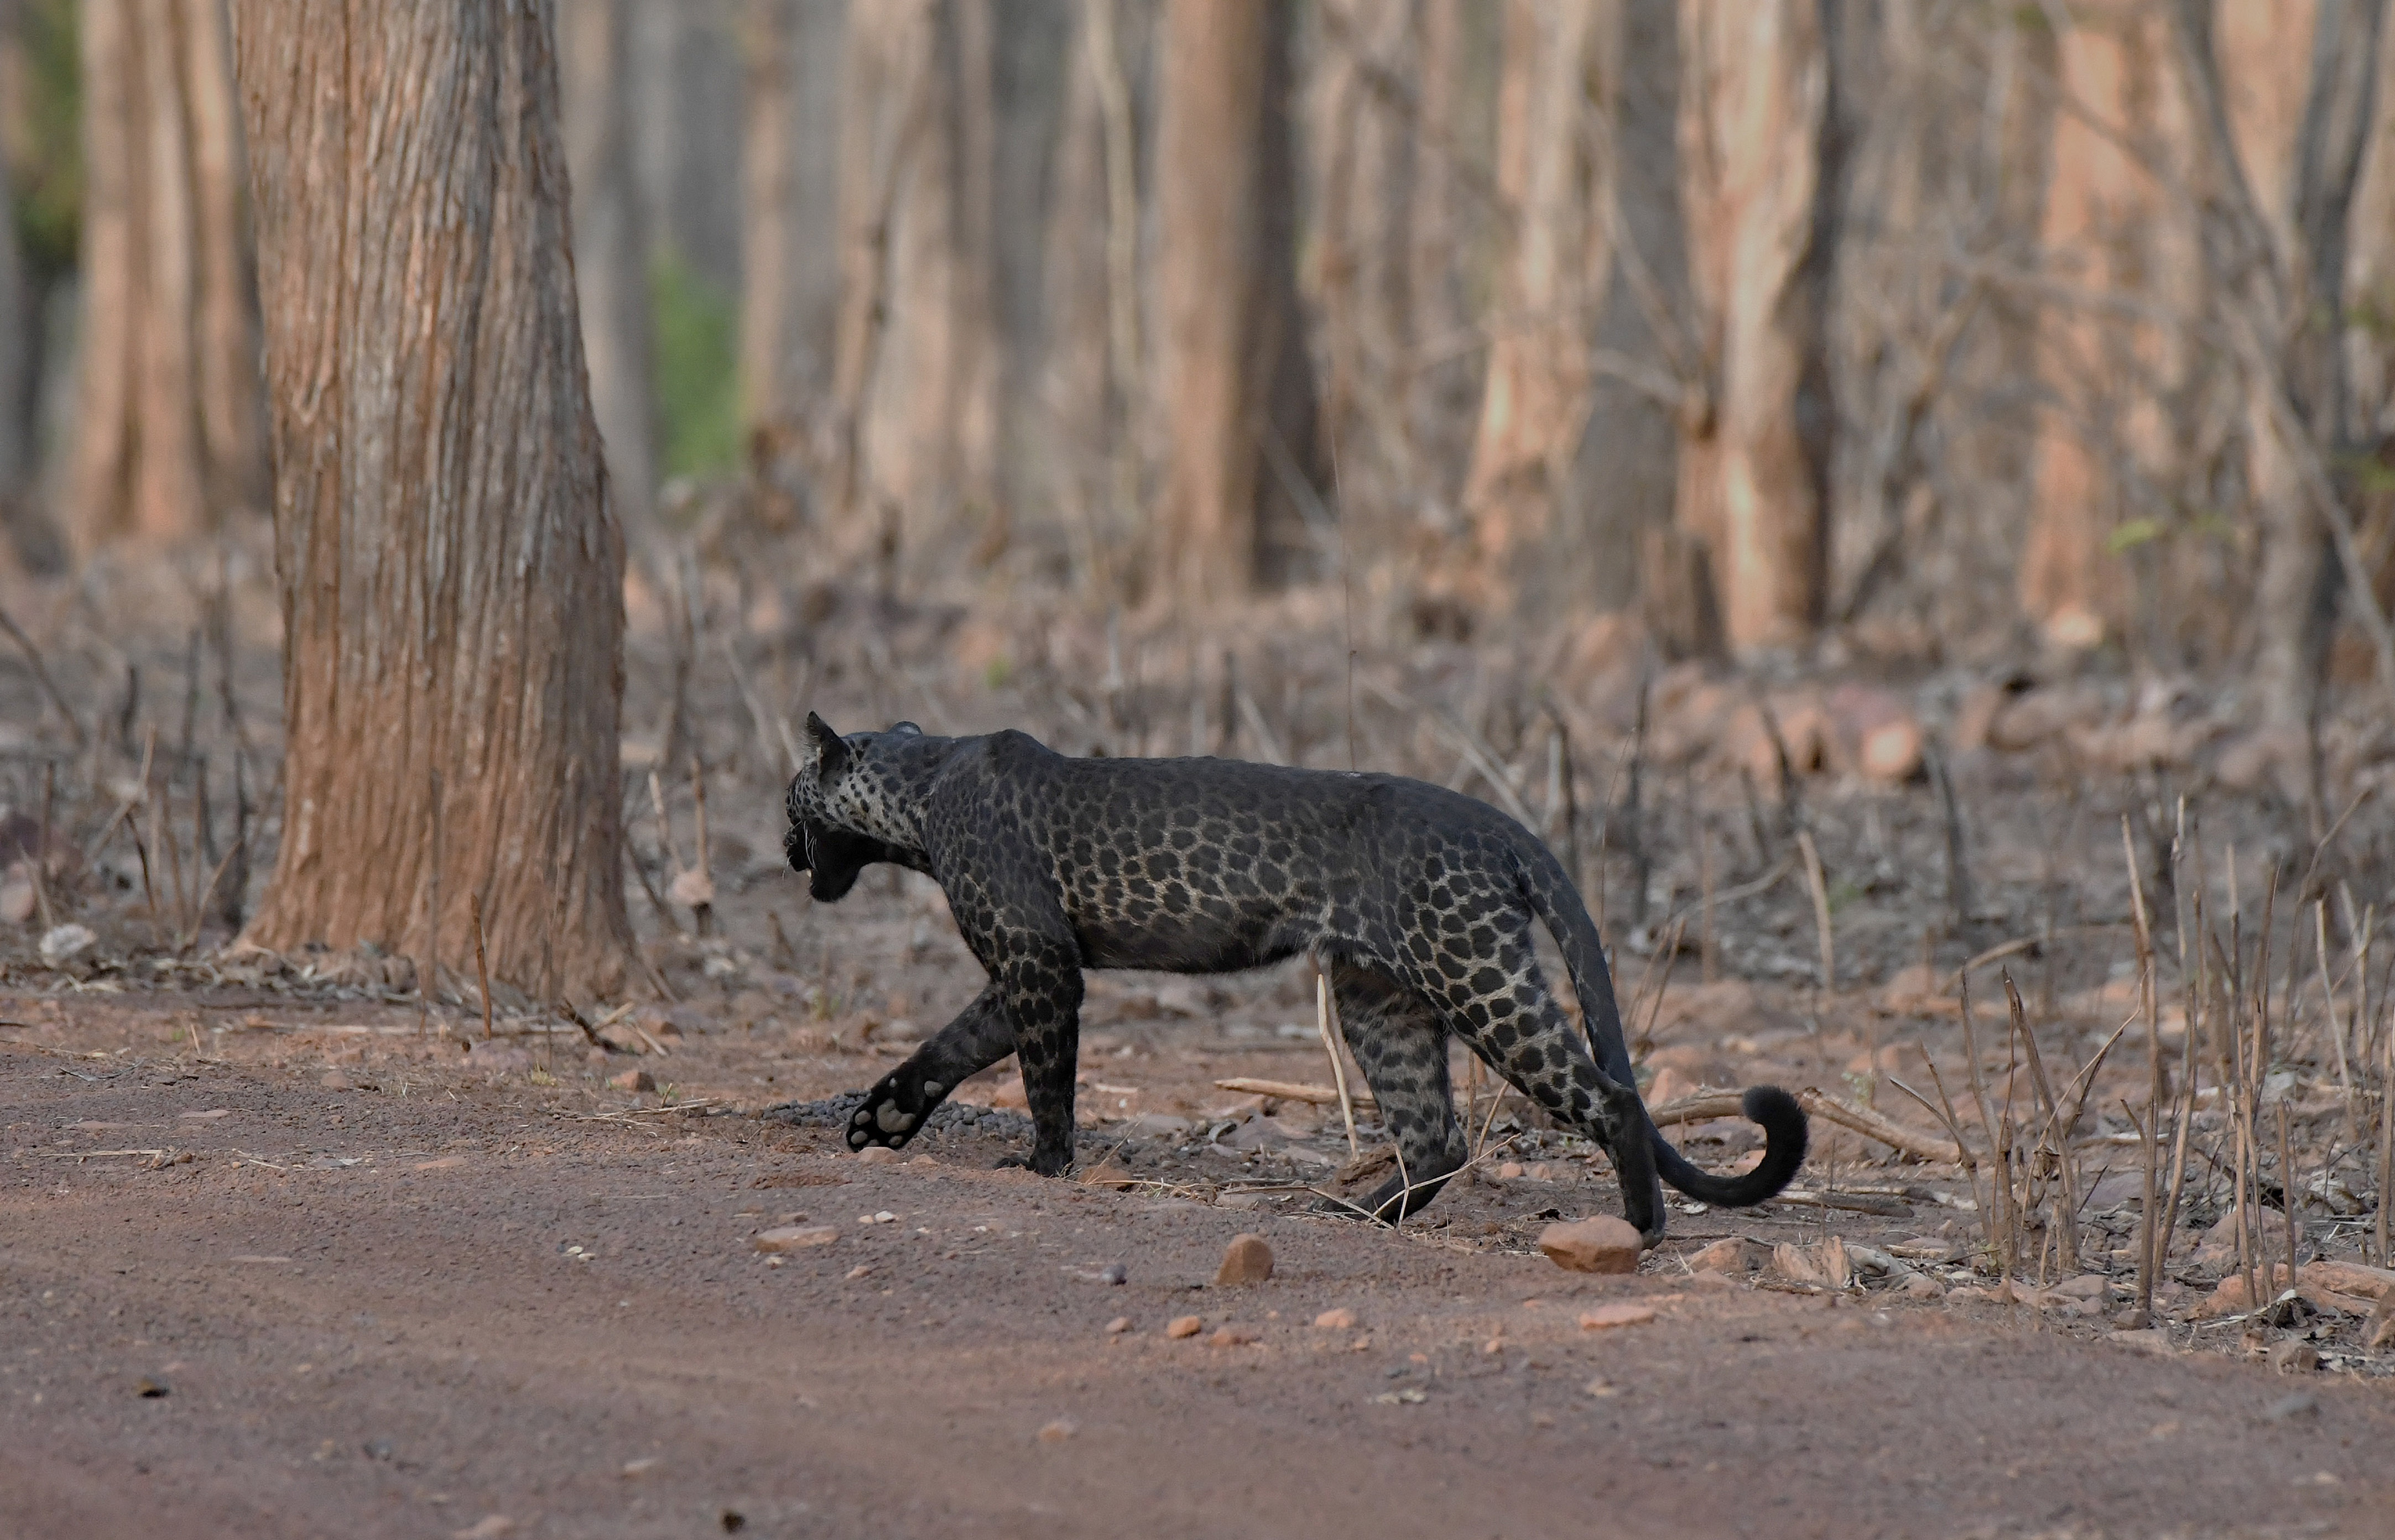 Extremely Rare Picture of Black Leopard Clicked By Tourist On First Ever Safari